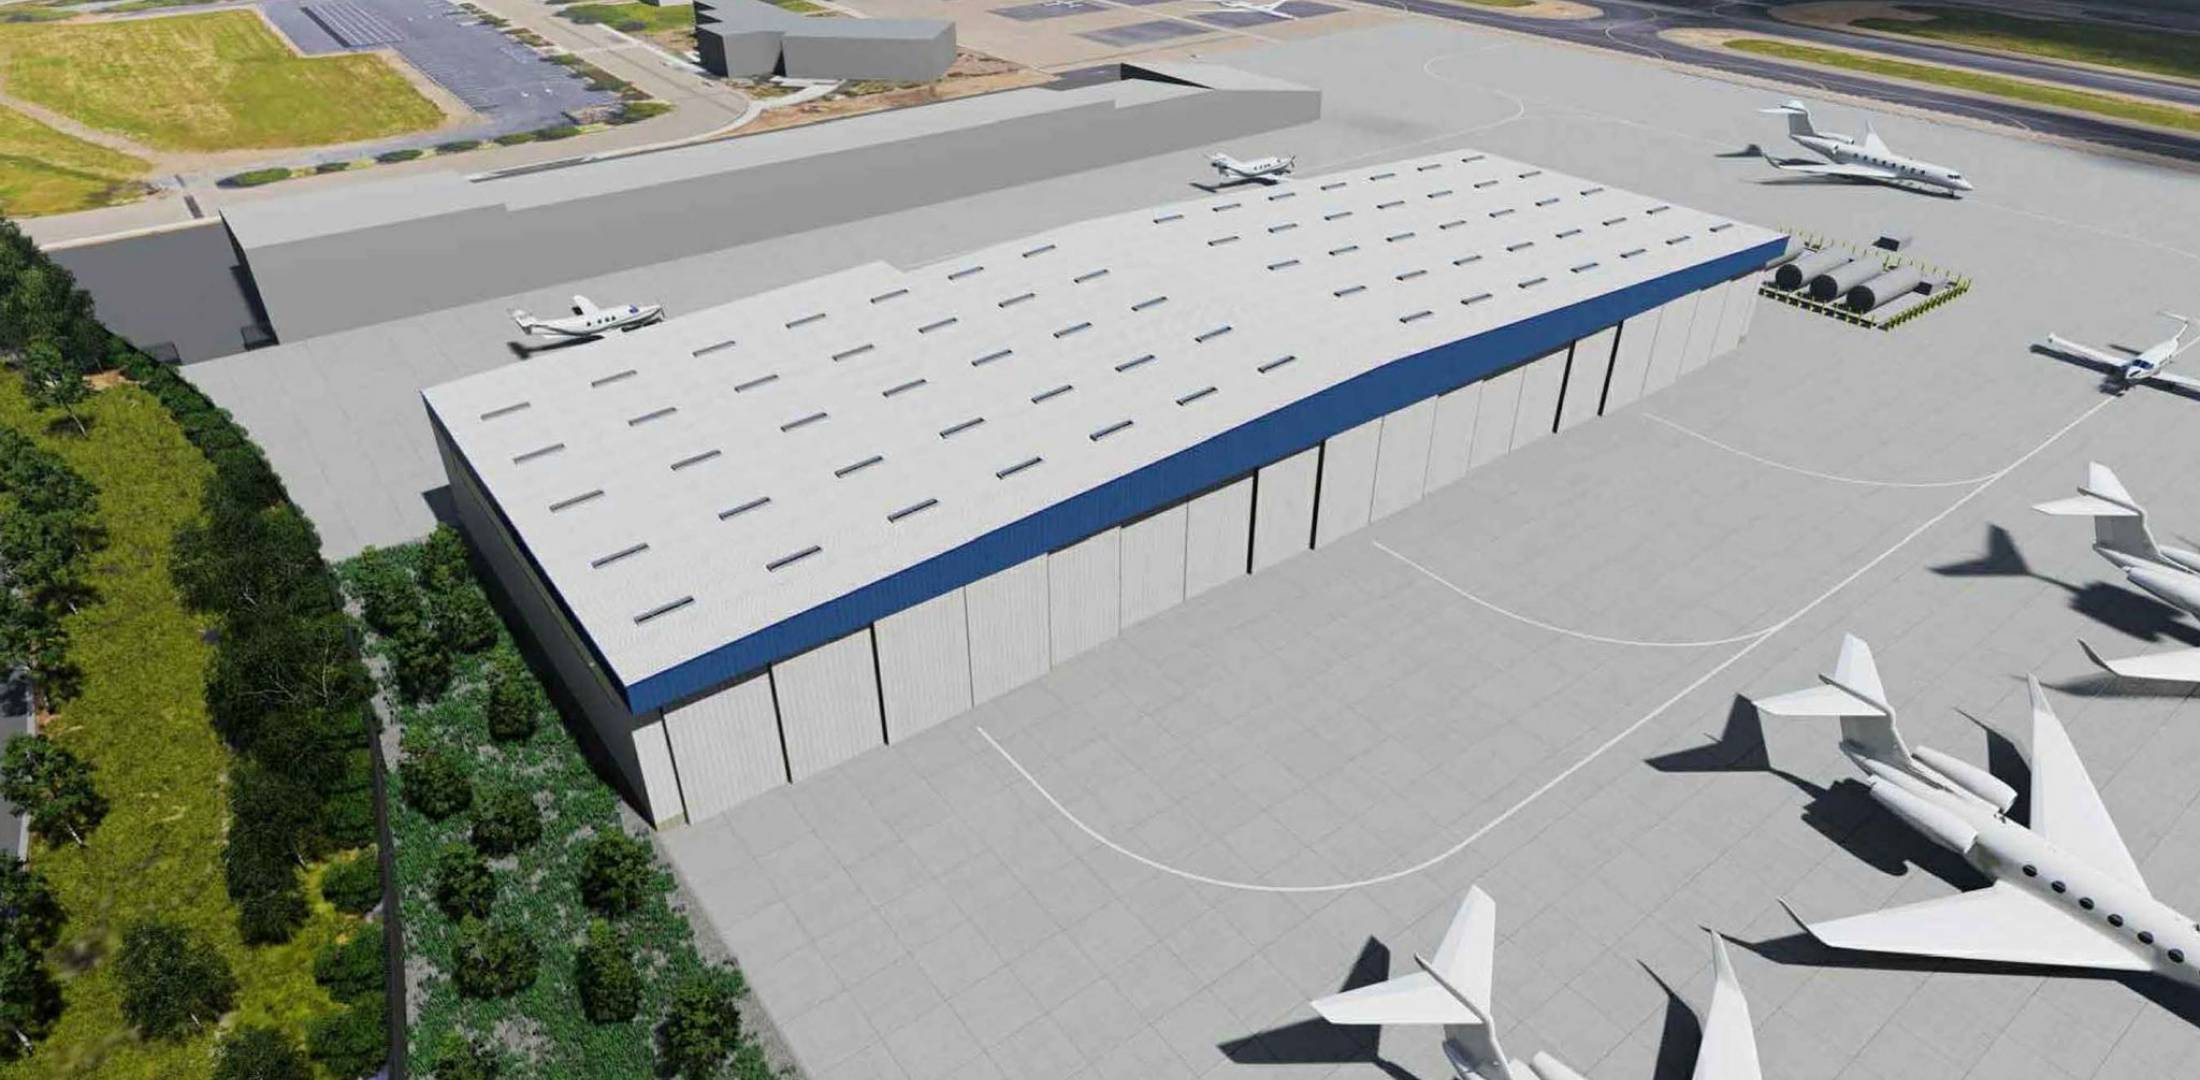 Artist rendering of the under-construction hangar at LVK